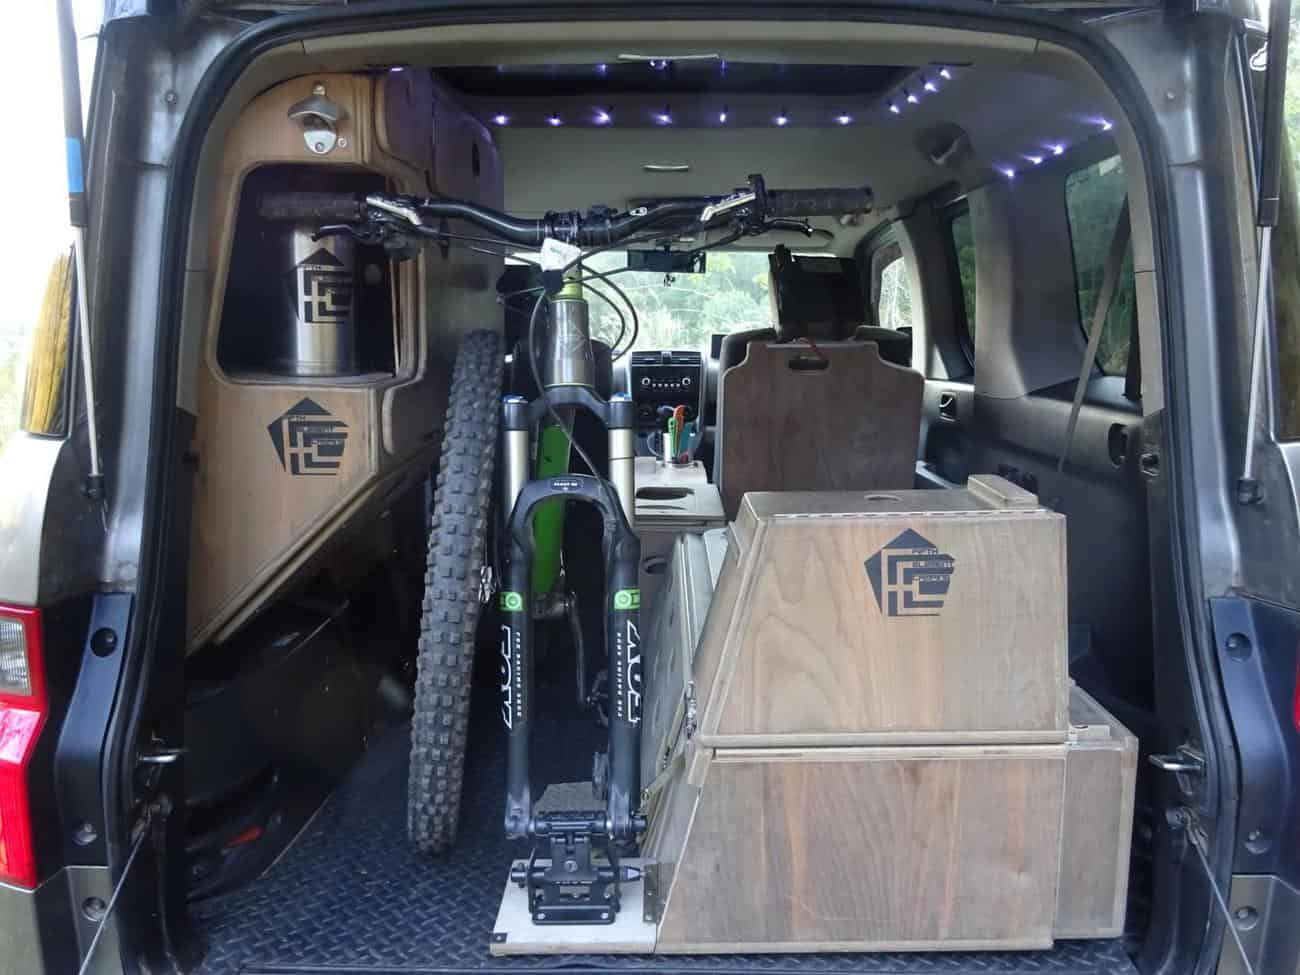 Quick and secure bike loading. The cabinet allows loading of bike handlebars. FifthElementCamping.com (Copy)